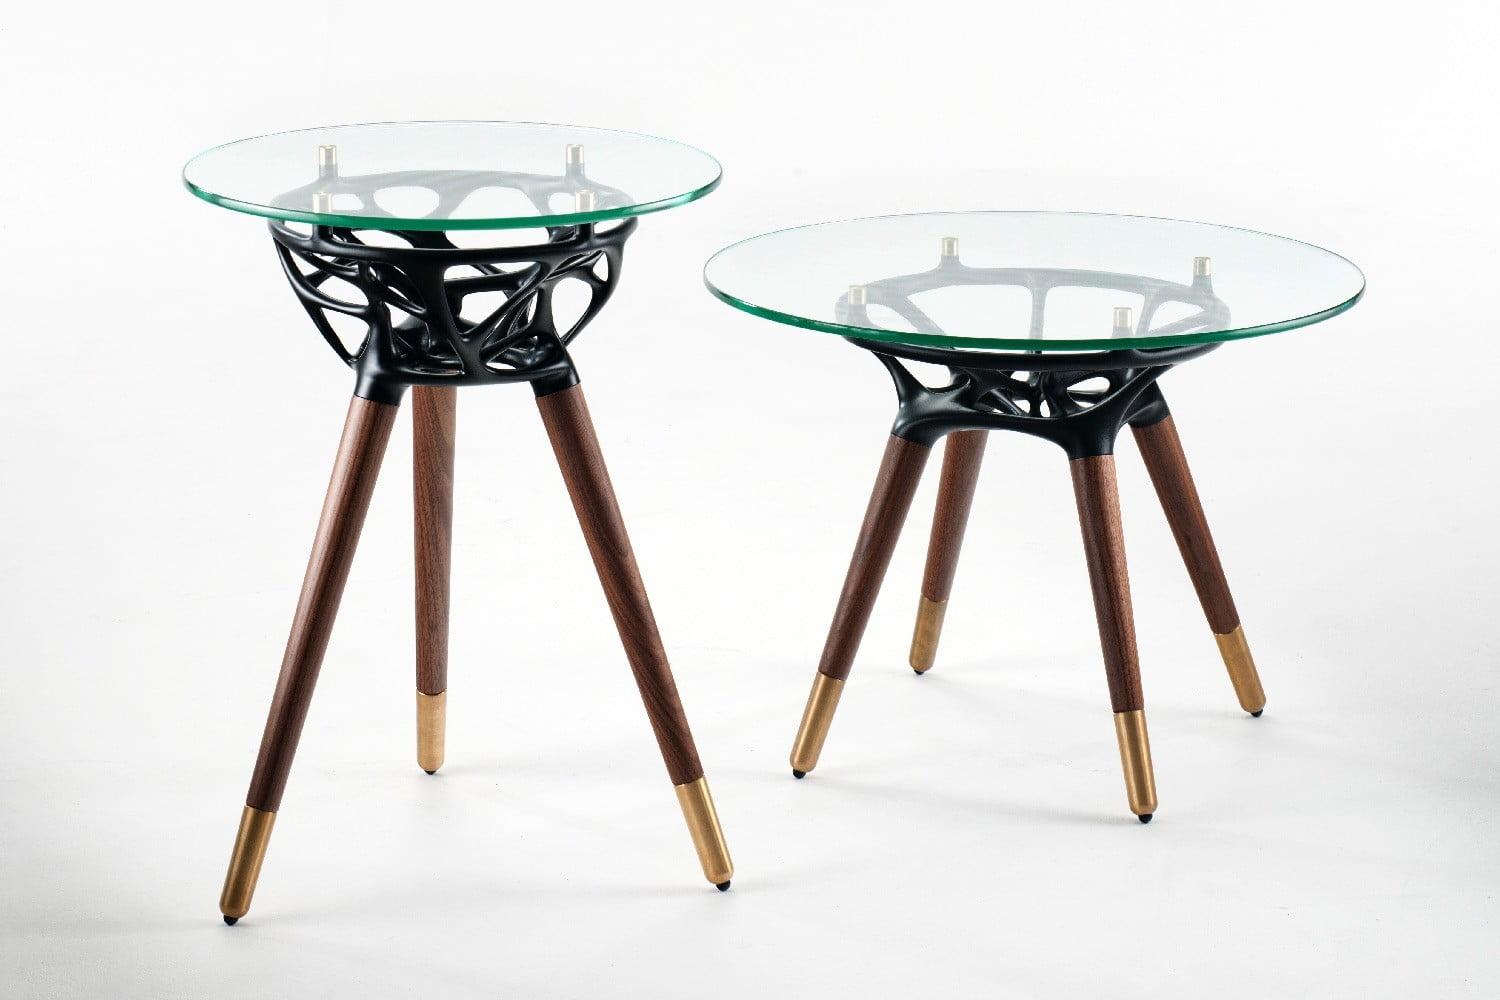 genetic algorithm rio table chairs chair3